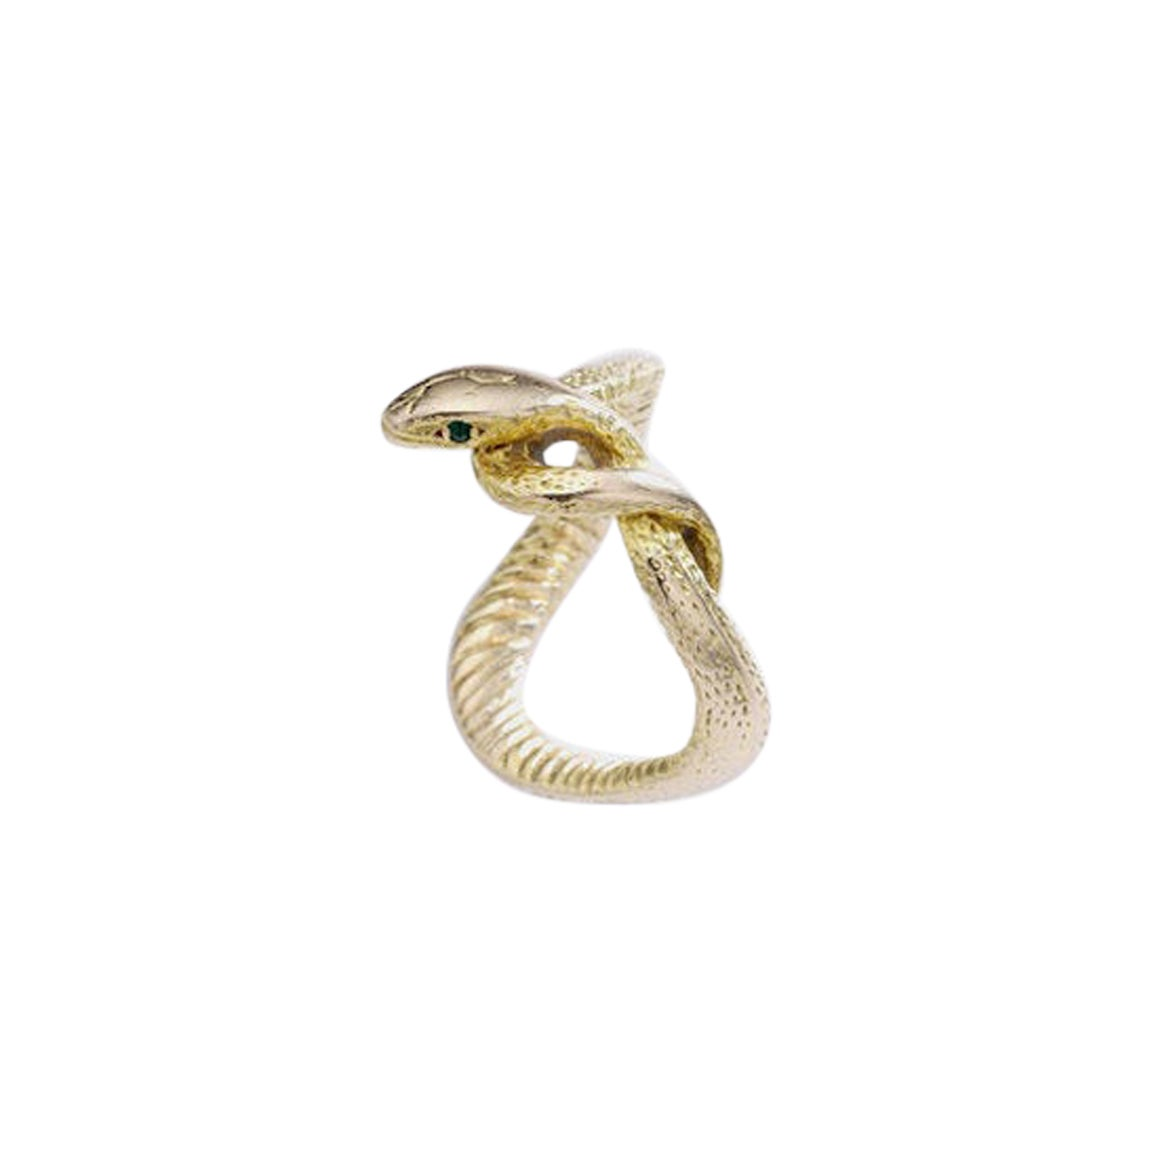 Antique Yellow Gold Snake Ring